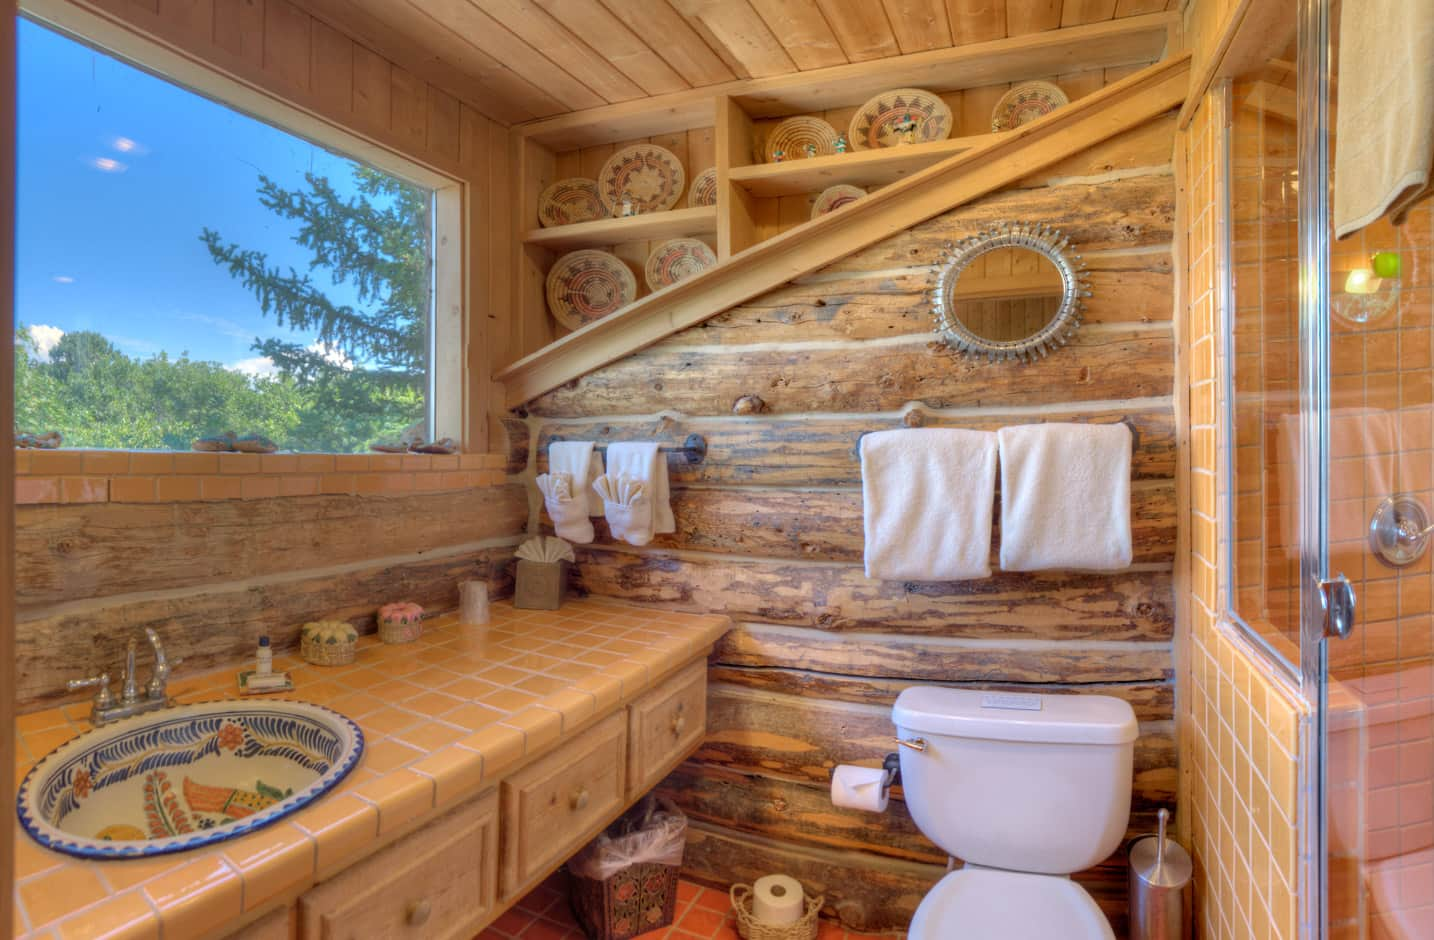 Bathroom with sink and large window